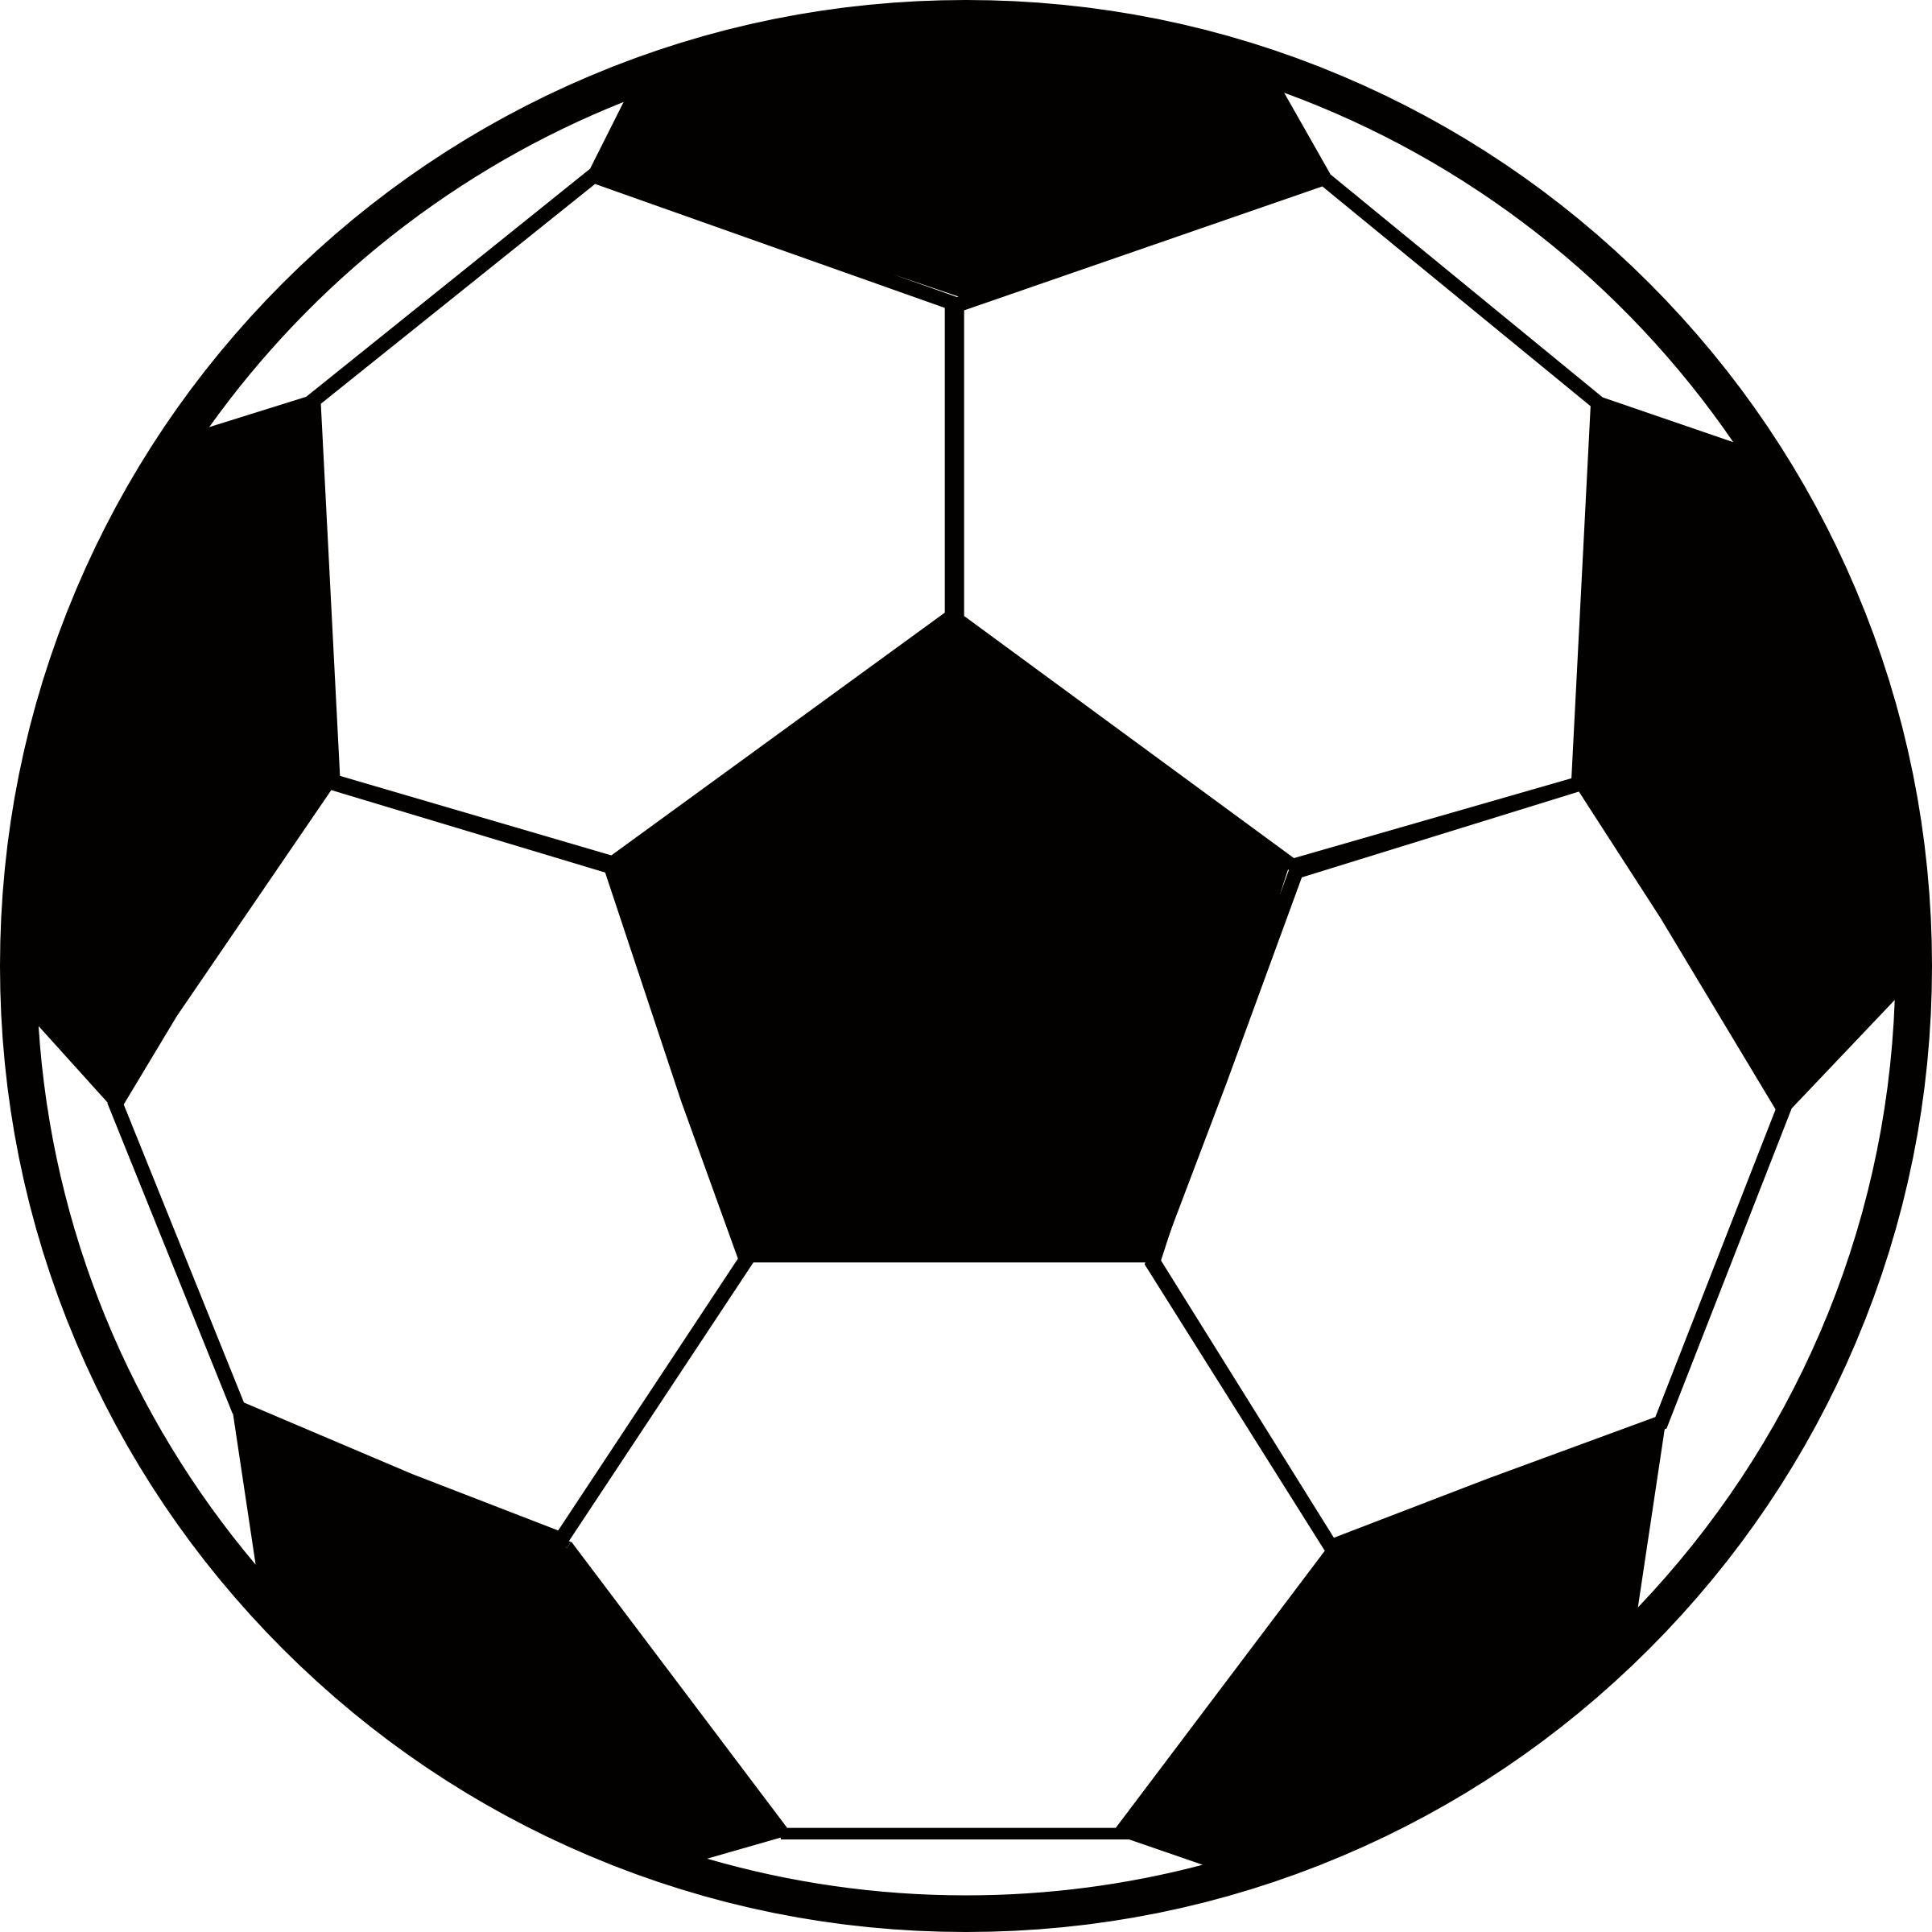 Soccer ball clipart big. Collection of images